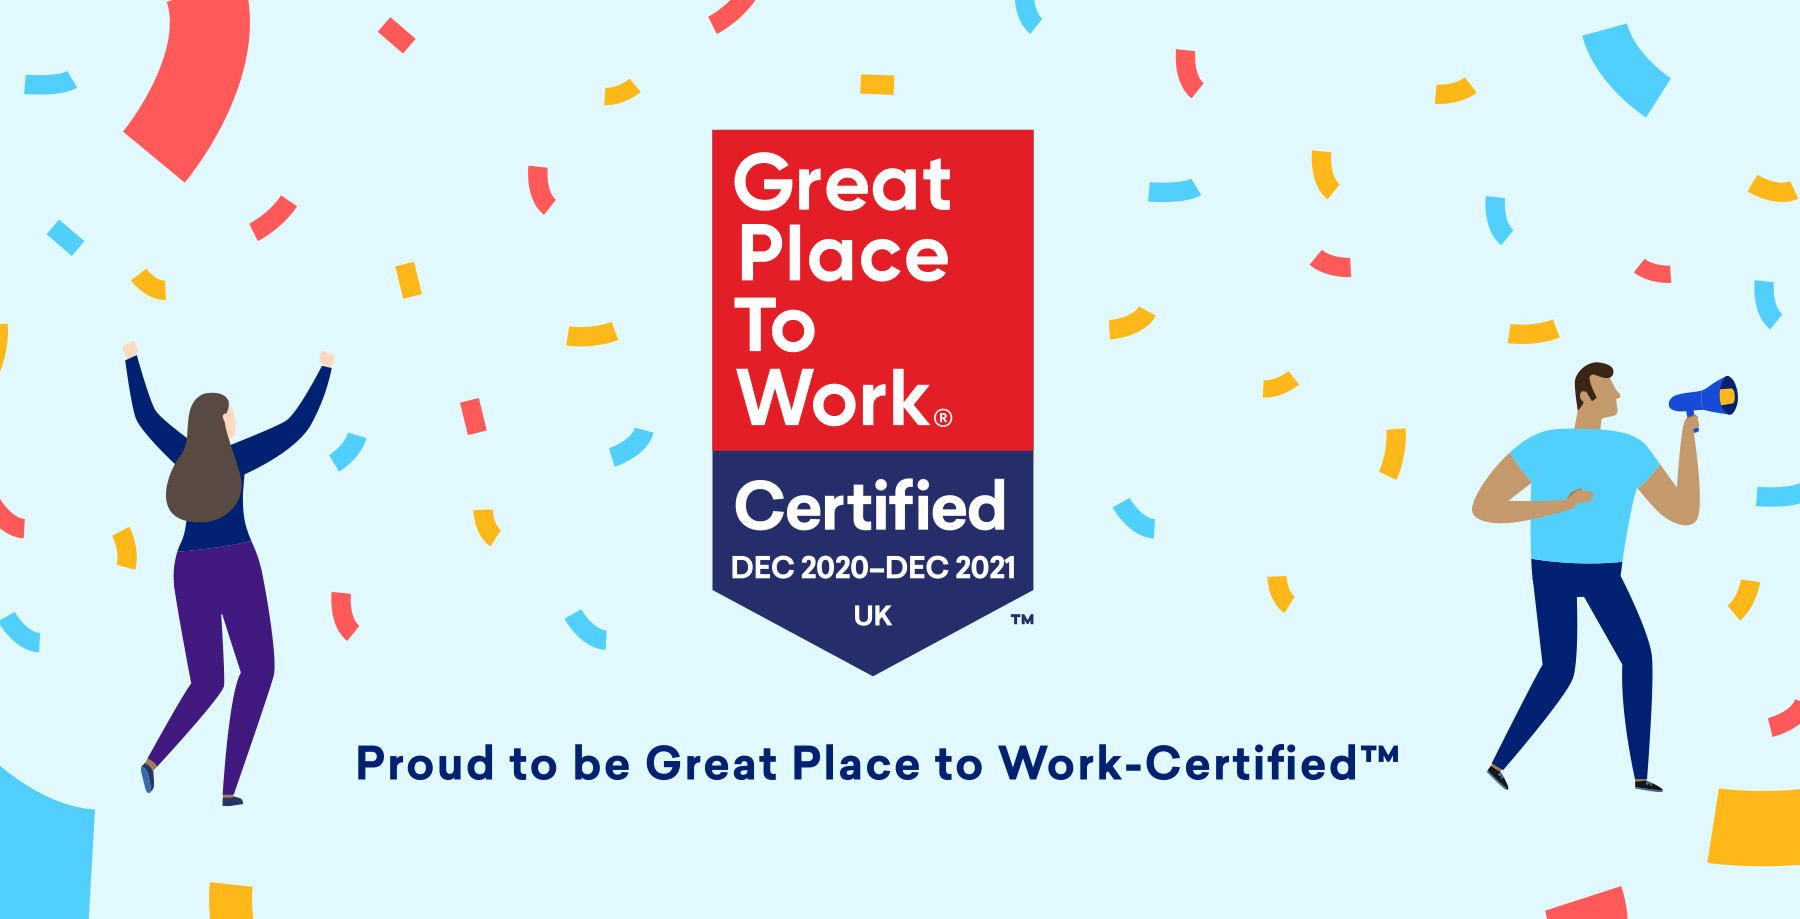 Fleet Alliance moves up UK's Best Places to Work rankings